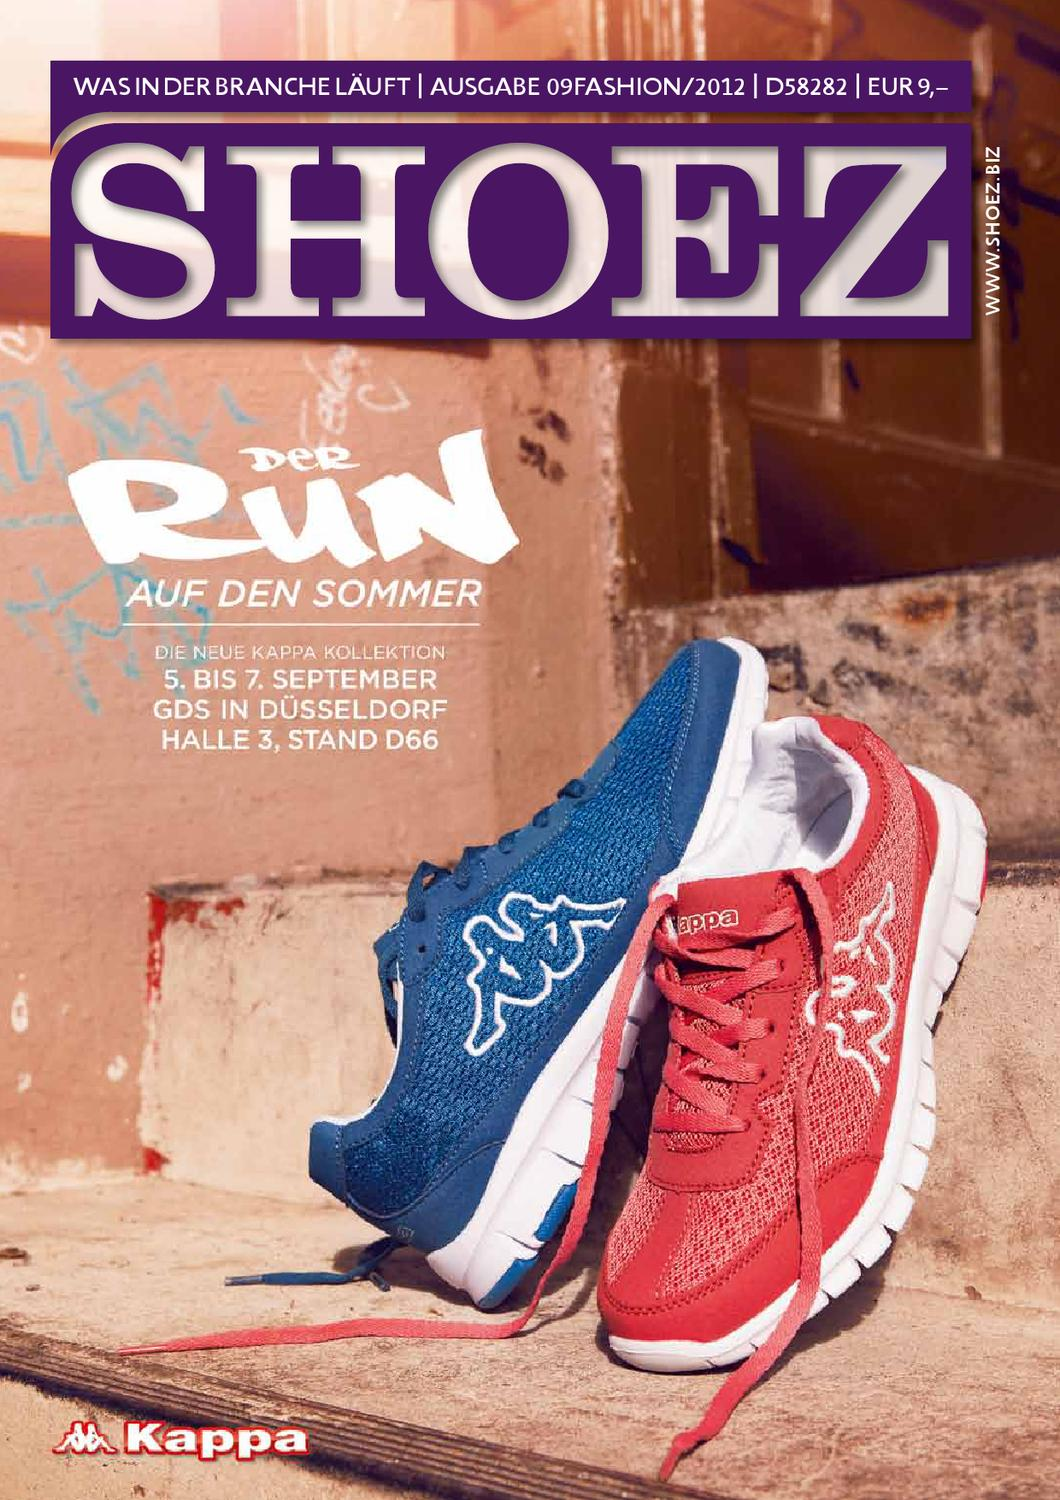 Shoez Fashion Sonderausgabe September 2012 by SHOEZ – Das